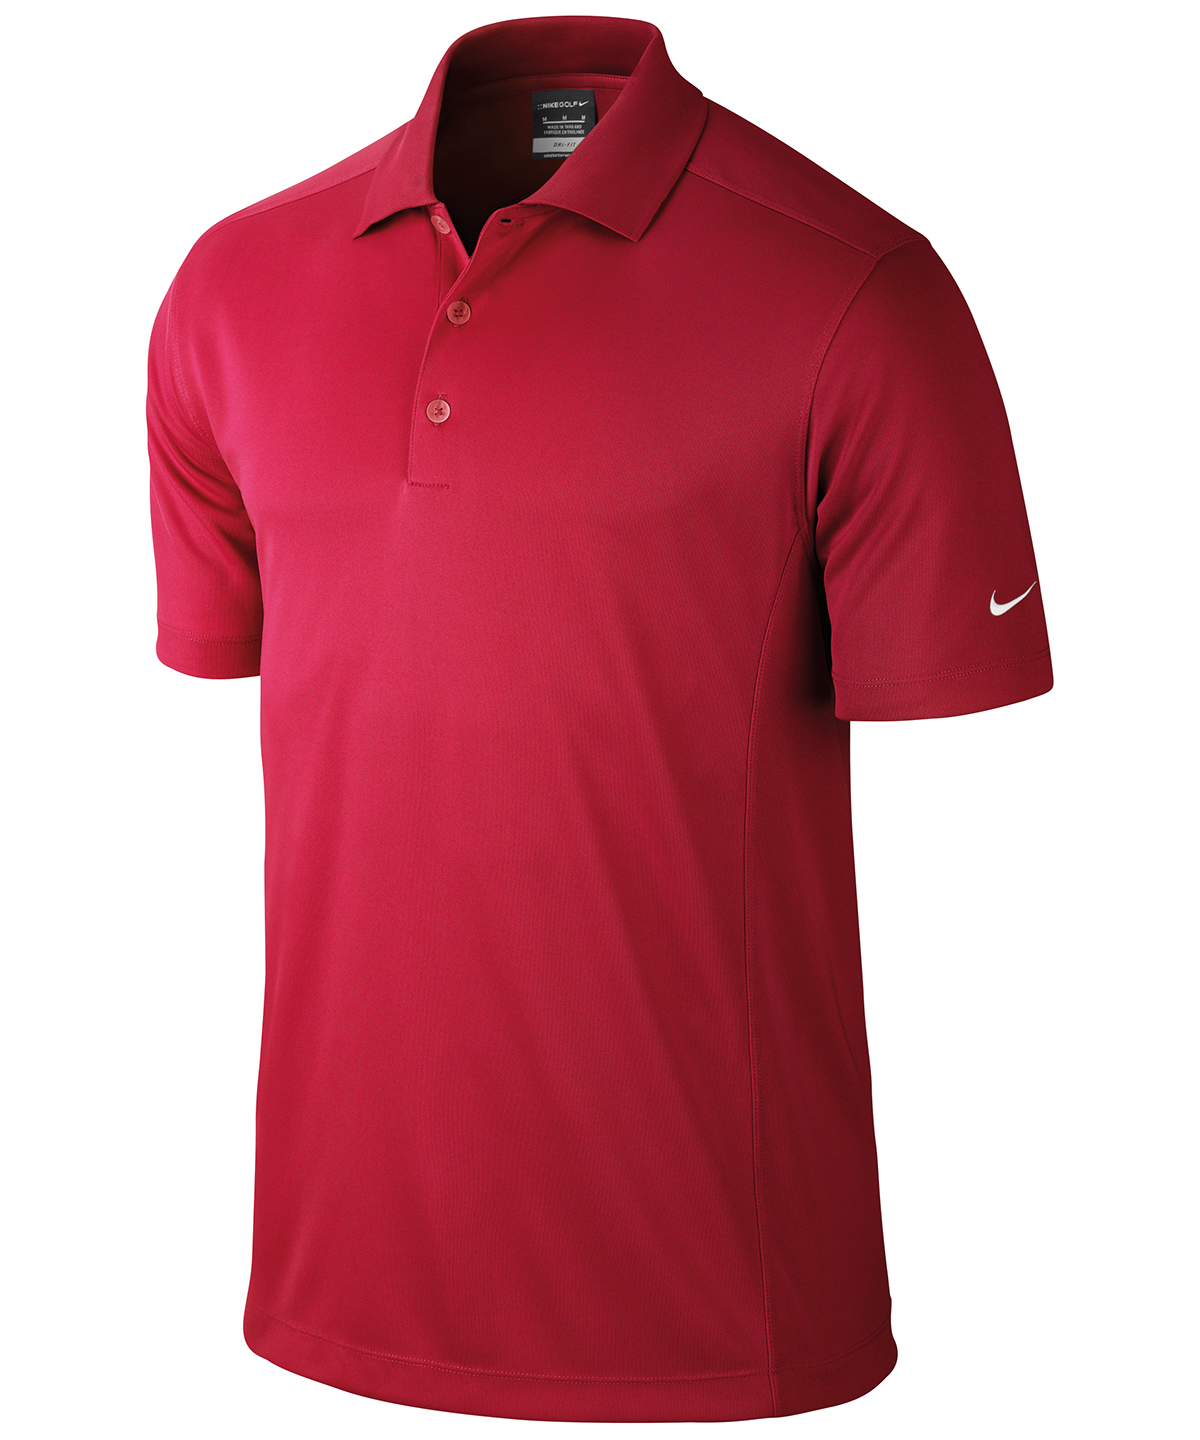 Nike men 39 s dri fit polo shirt nk215 for Dri fit dress shirts